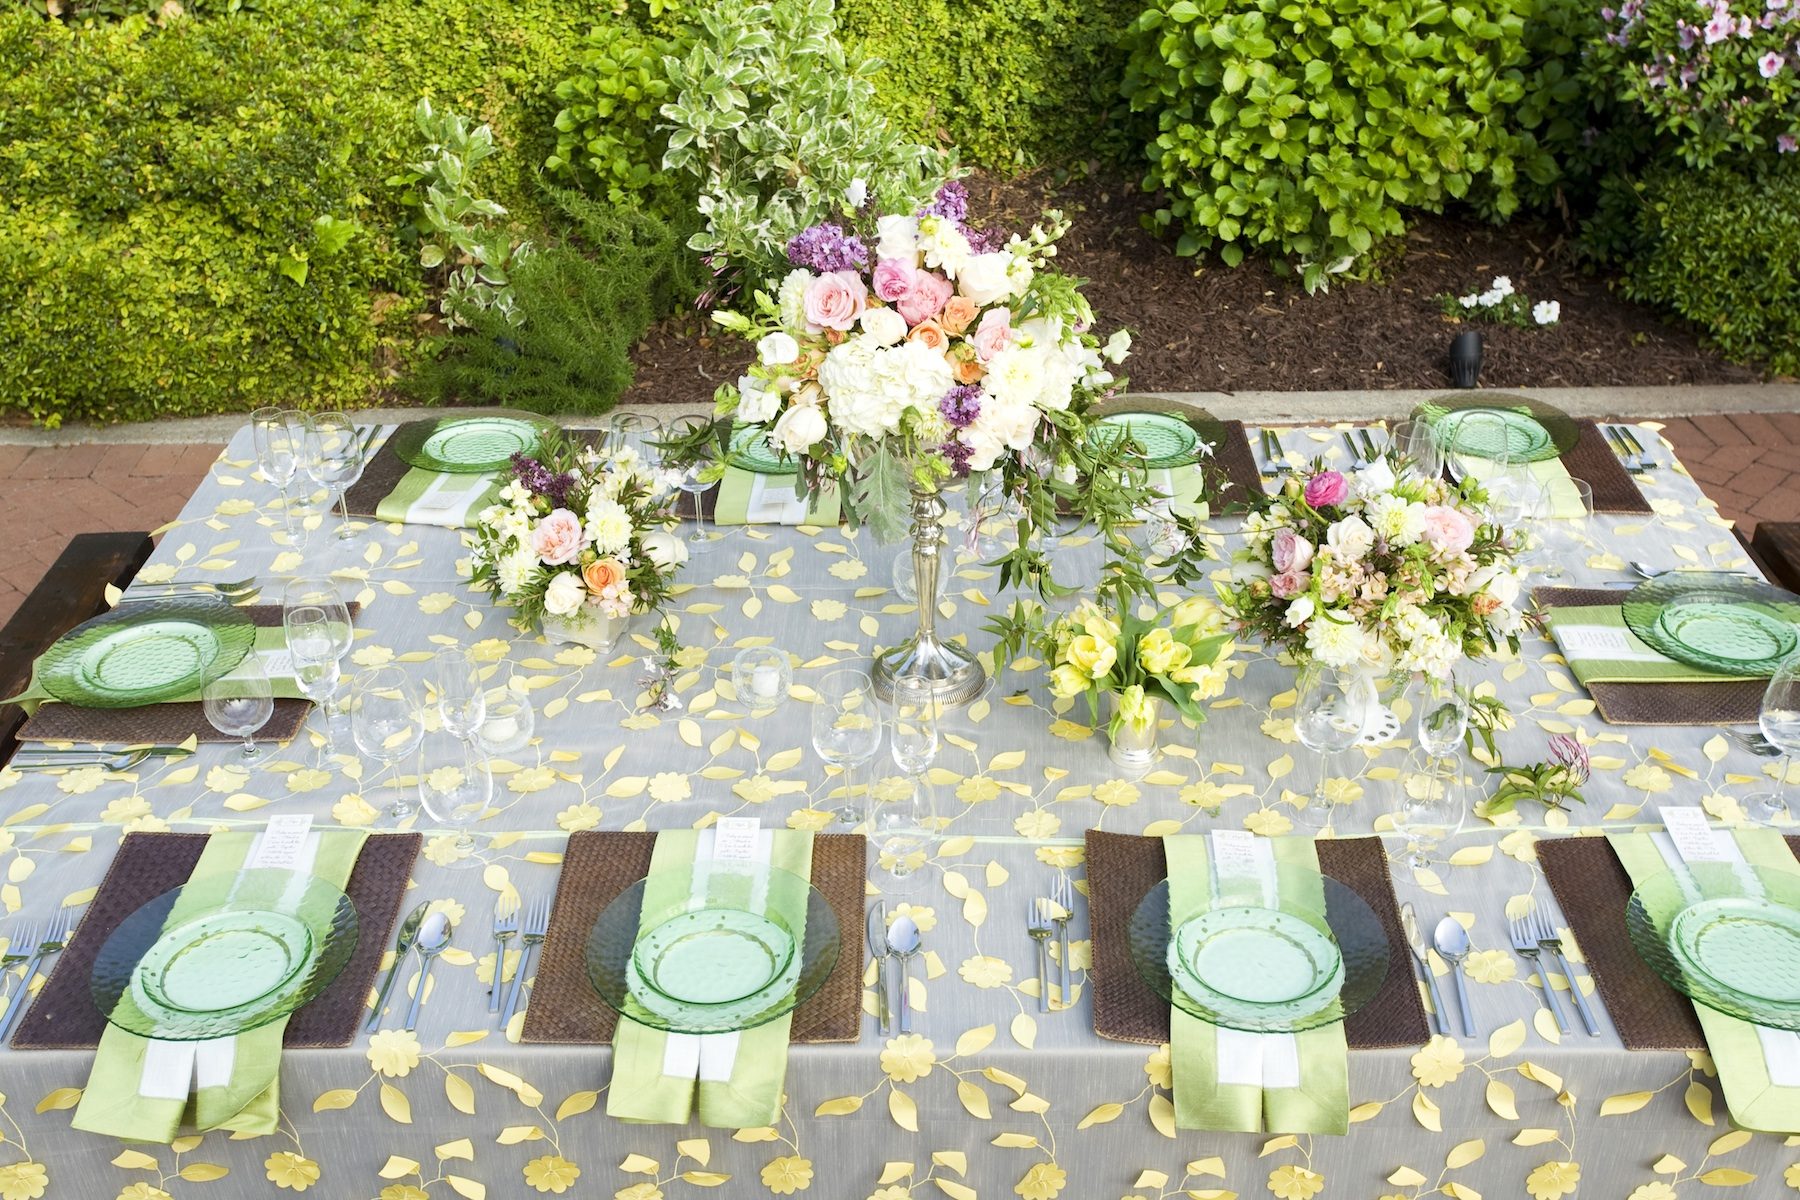 Whimsical-garden-wedding-romantic-wedding-centerpieces-tablescape.original